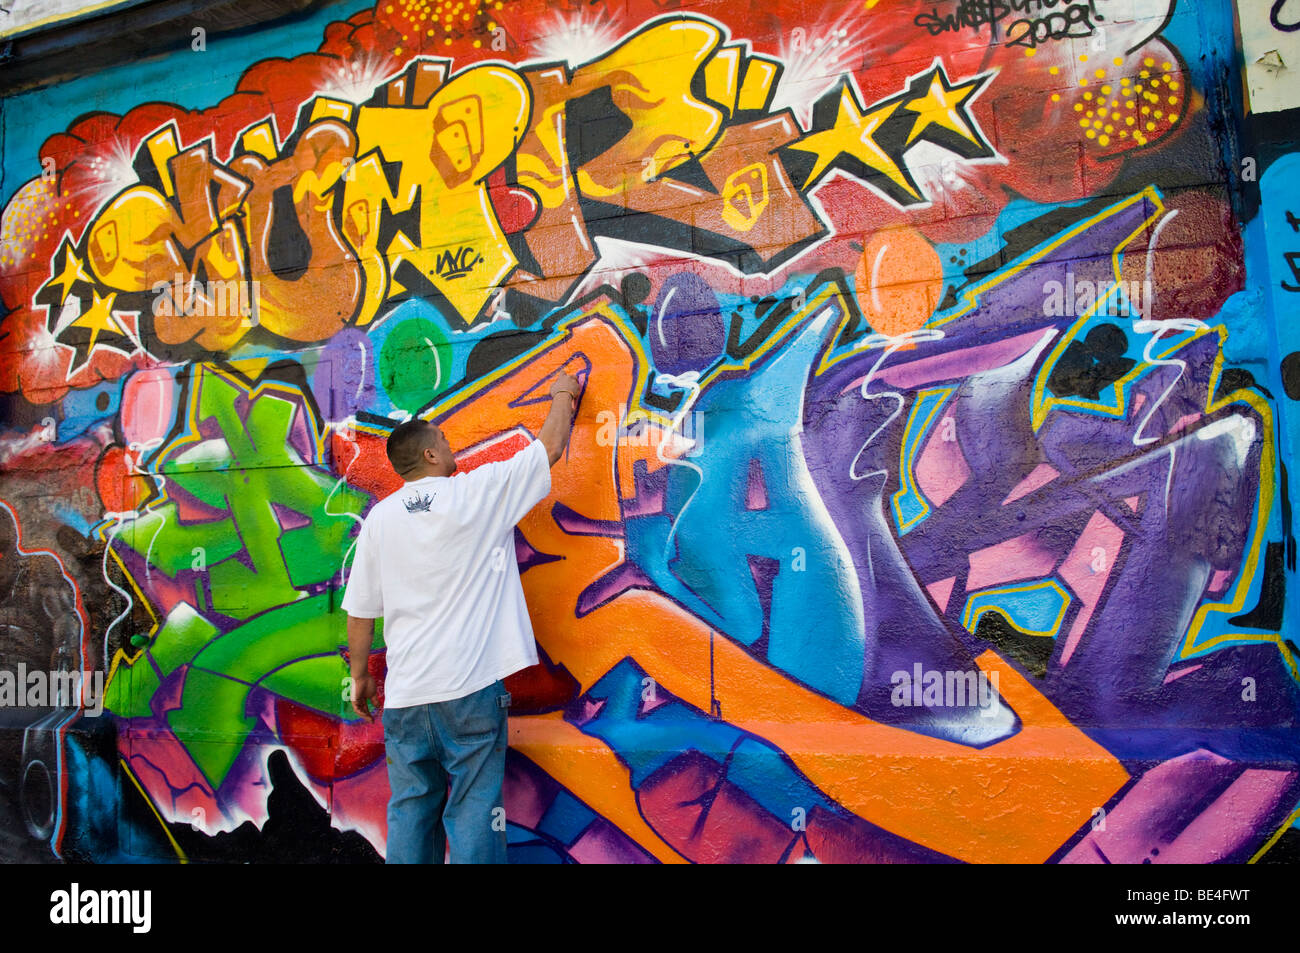 Graffiti artist works on his mural on the Five Pointz building in Long Island City in Queens - Stock Image